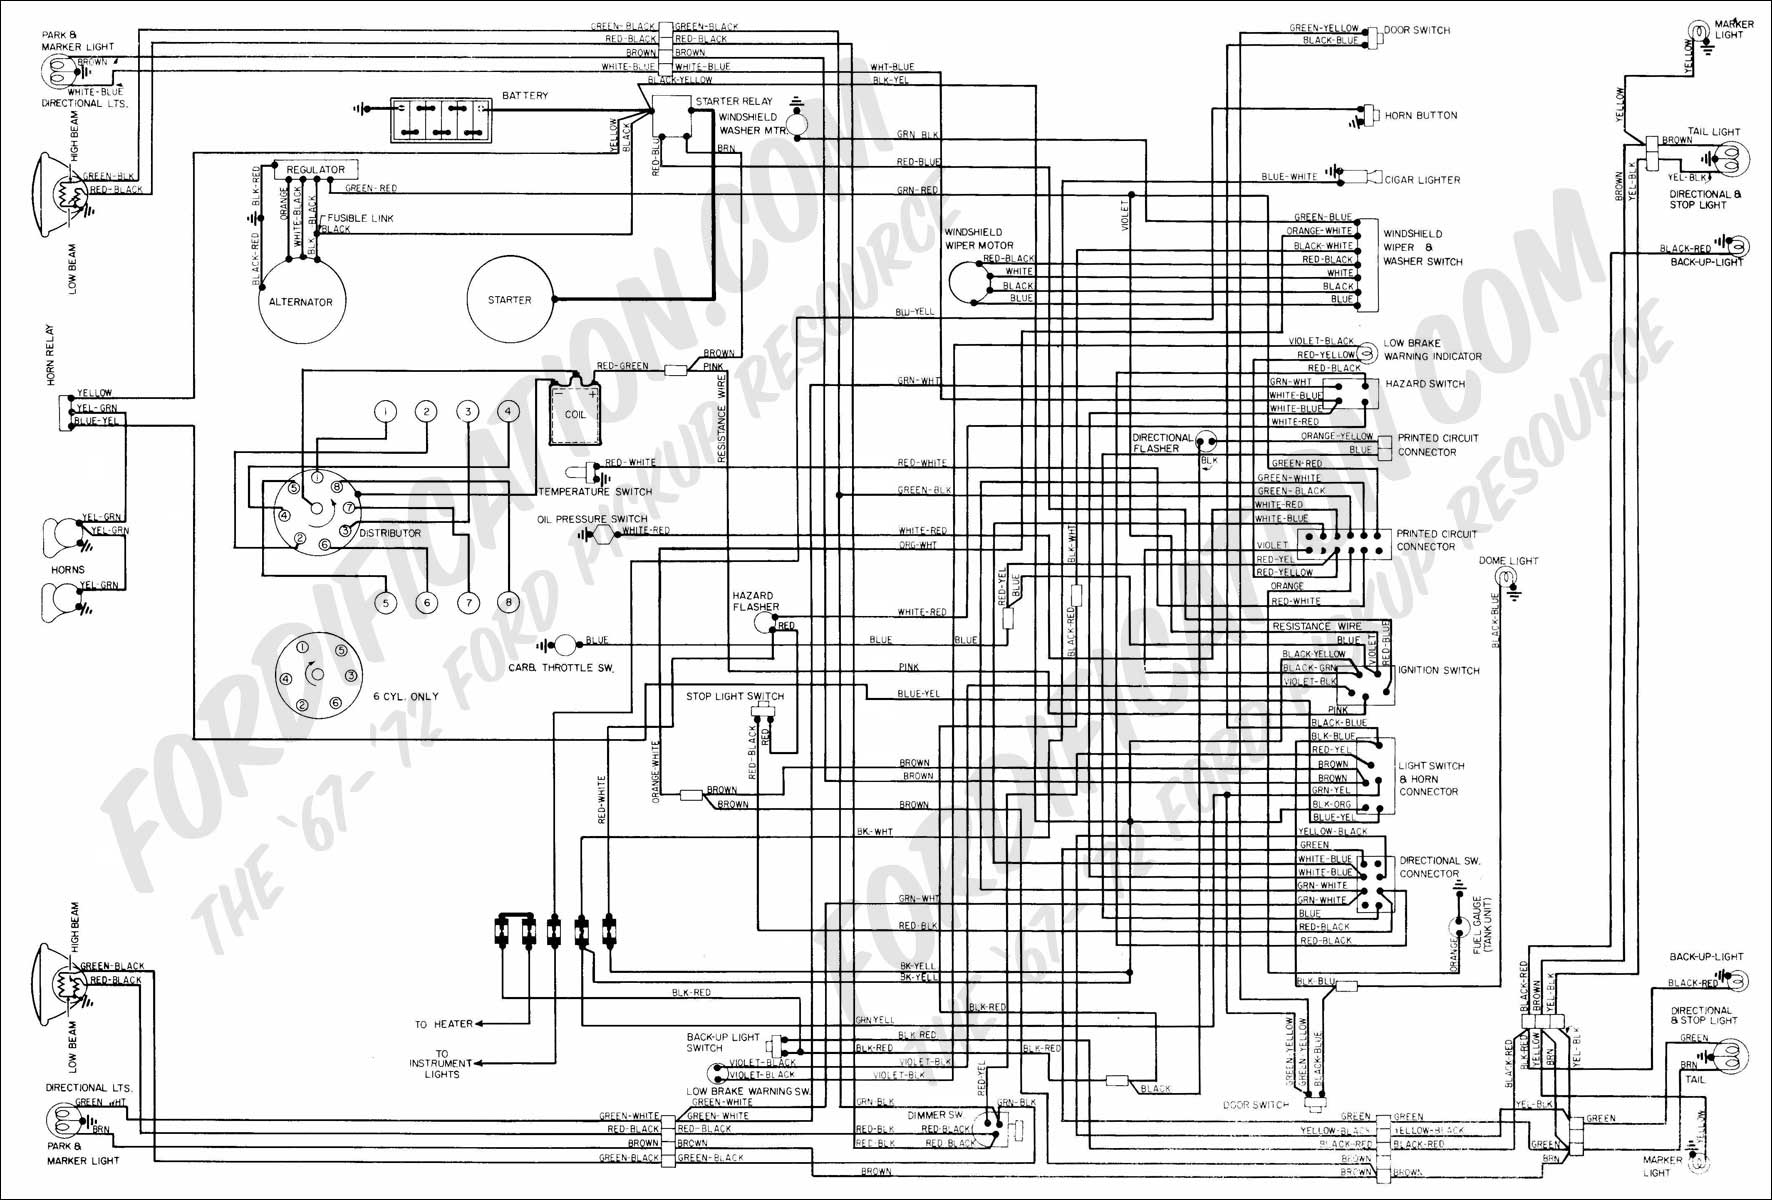 wiring diagram 72_quick starter wiring picture diagram for ford expedition 100 images 1971 ford torino ignition wiring diagram at bayanpartner.co